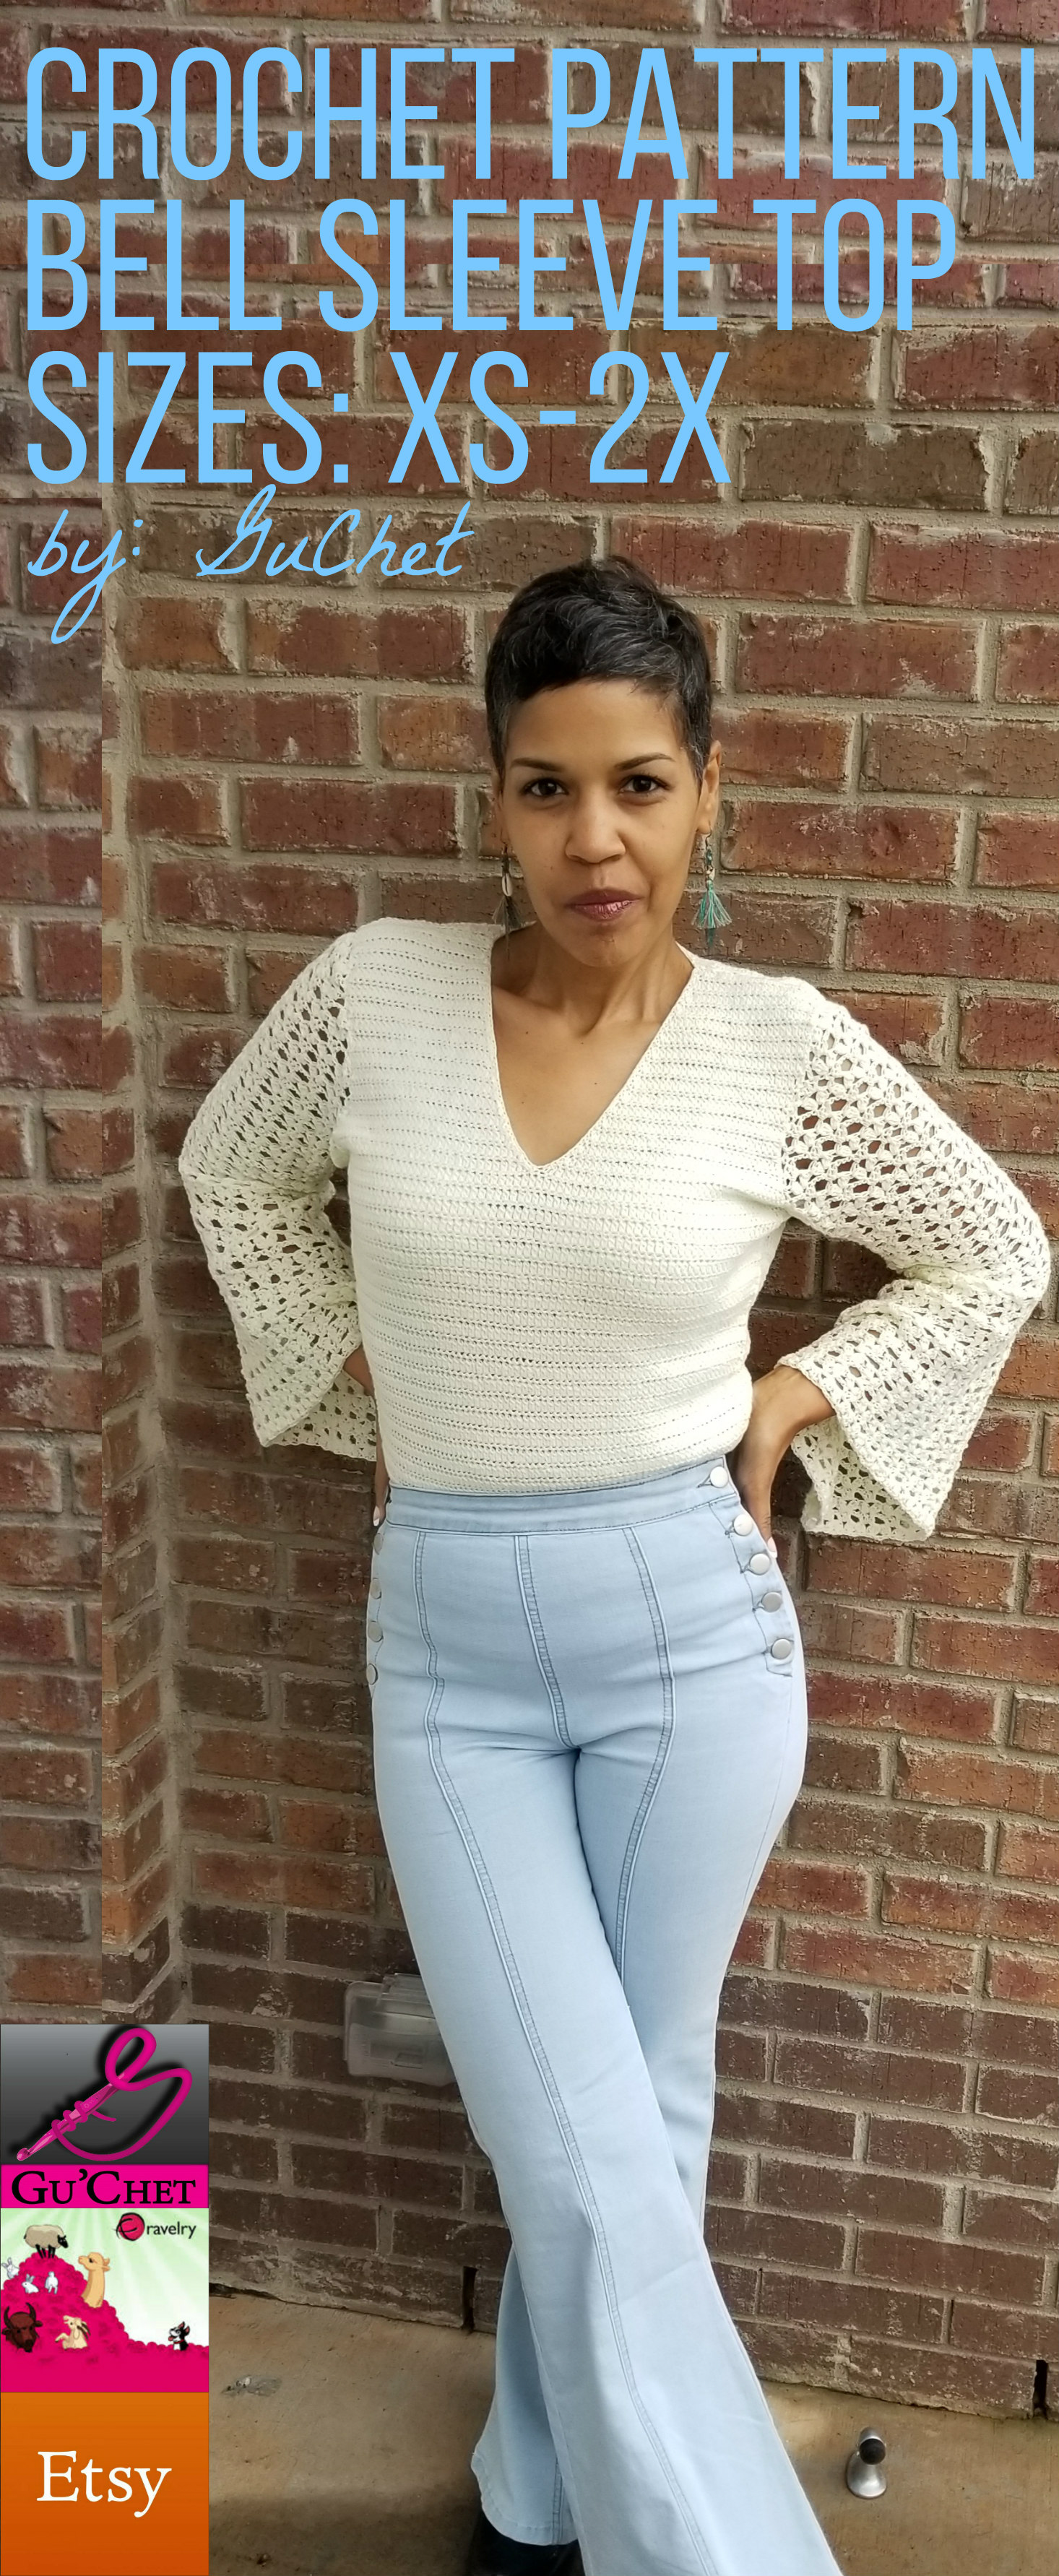 6_Crochet Top Pattern by GuChet_Bell Sleeve Top_15.jpg